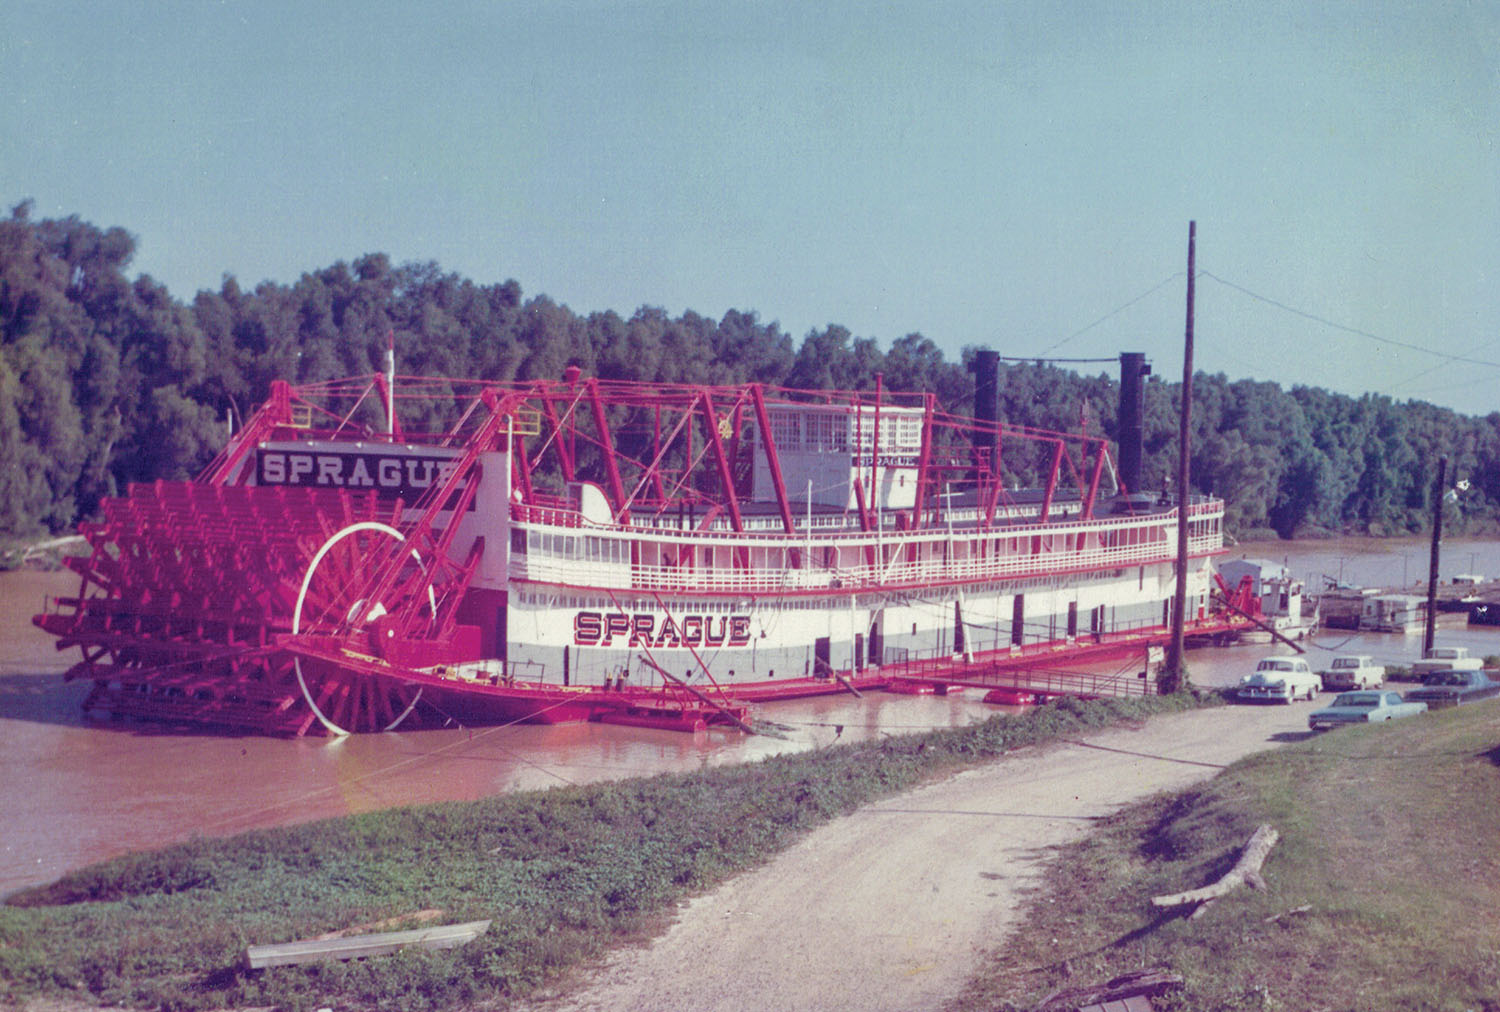 The famed towboat Sprague at the Vicksburg, Miss., waterfront in June 1969. (Keith Norrington collection)